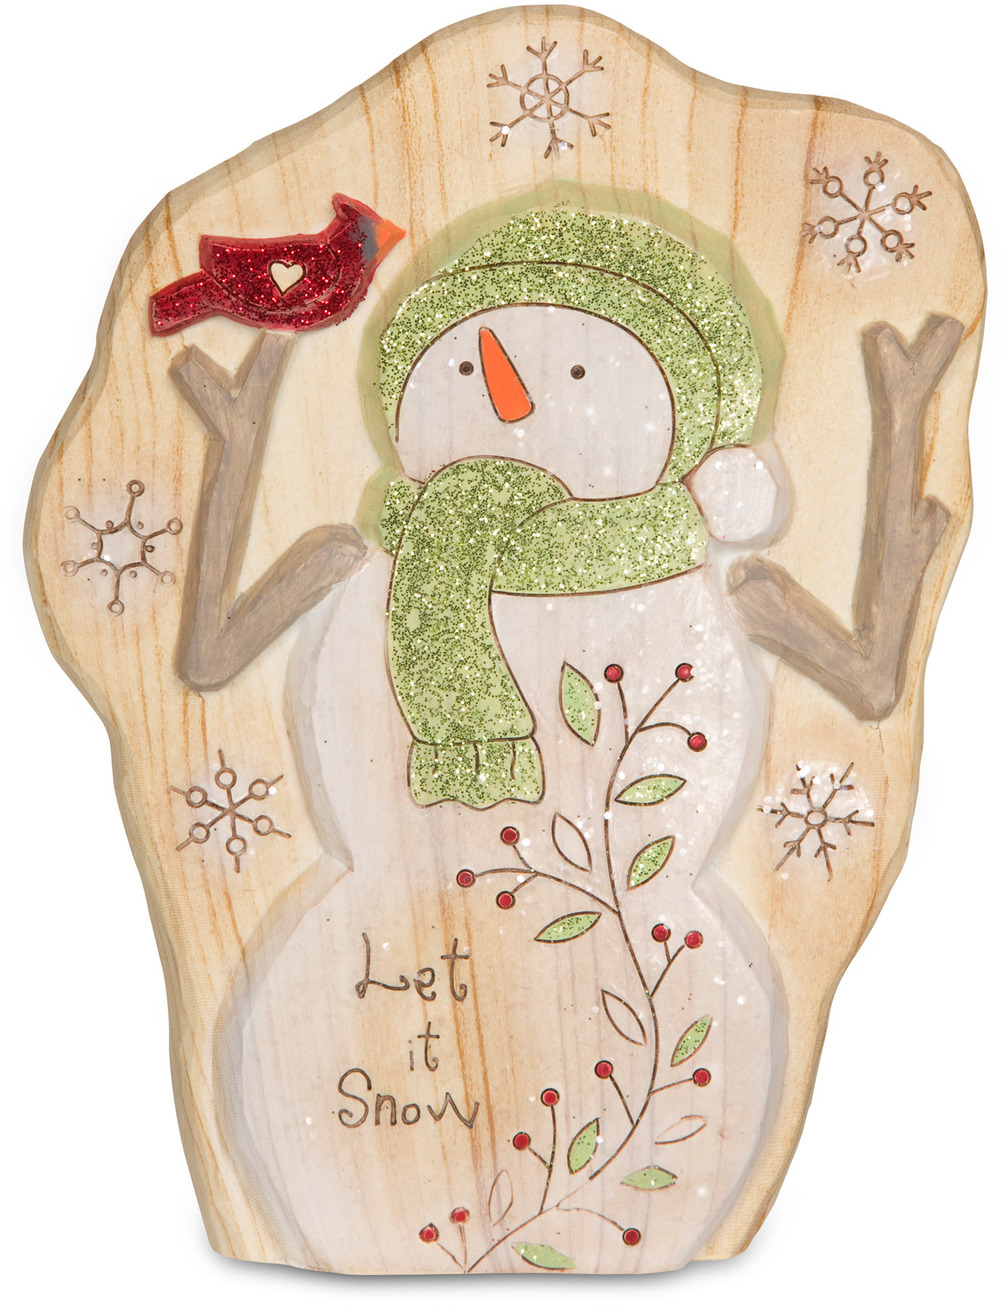 "Let it Snow by Heavenly Winter Woods - Let it Snow - 7"" Snowman & Cardinal Figurine/Carving"